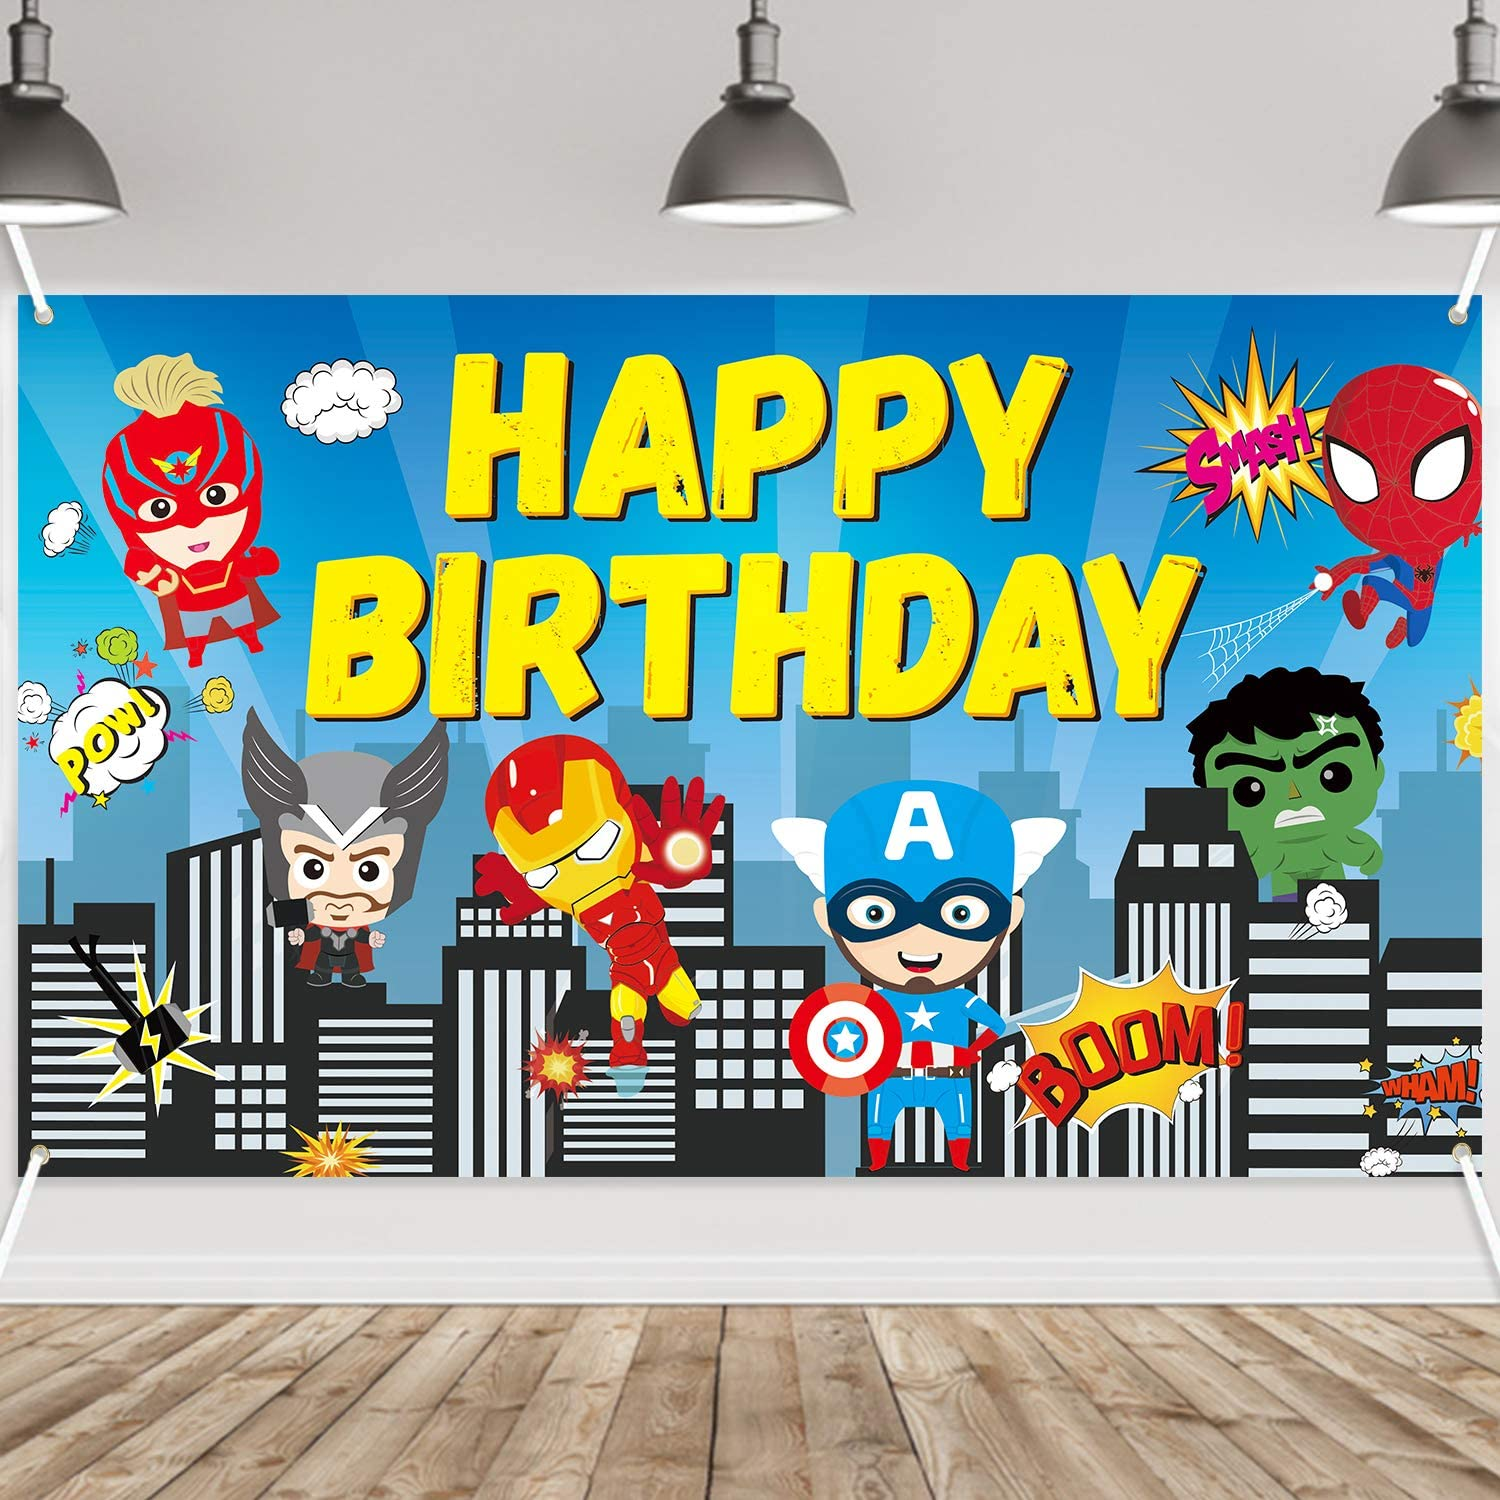 PANTIDE Superhero Happy Birthday Backdrop Banner, Colorful Spiderman Superhero Themed Photography Backdrop Birthday Decoration Party Supplies, Super City Wall Decor Welcome Poster Banner(6.6ft3.8ft)